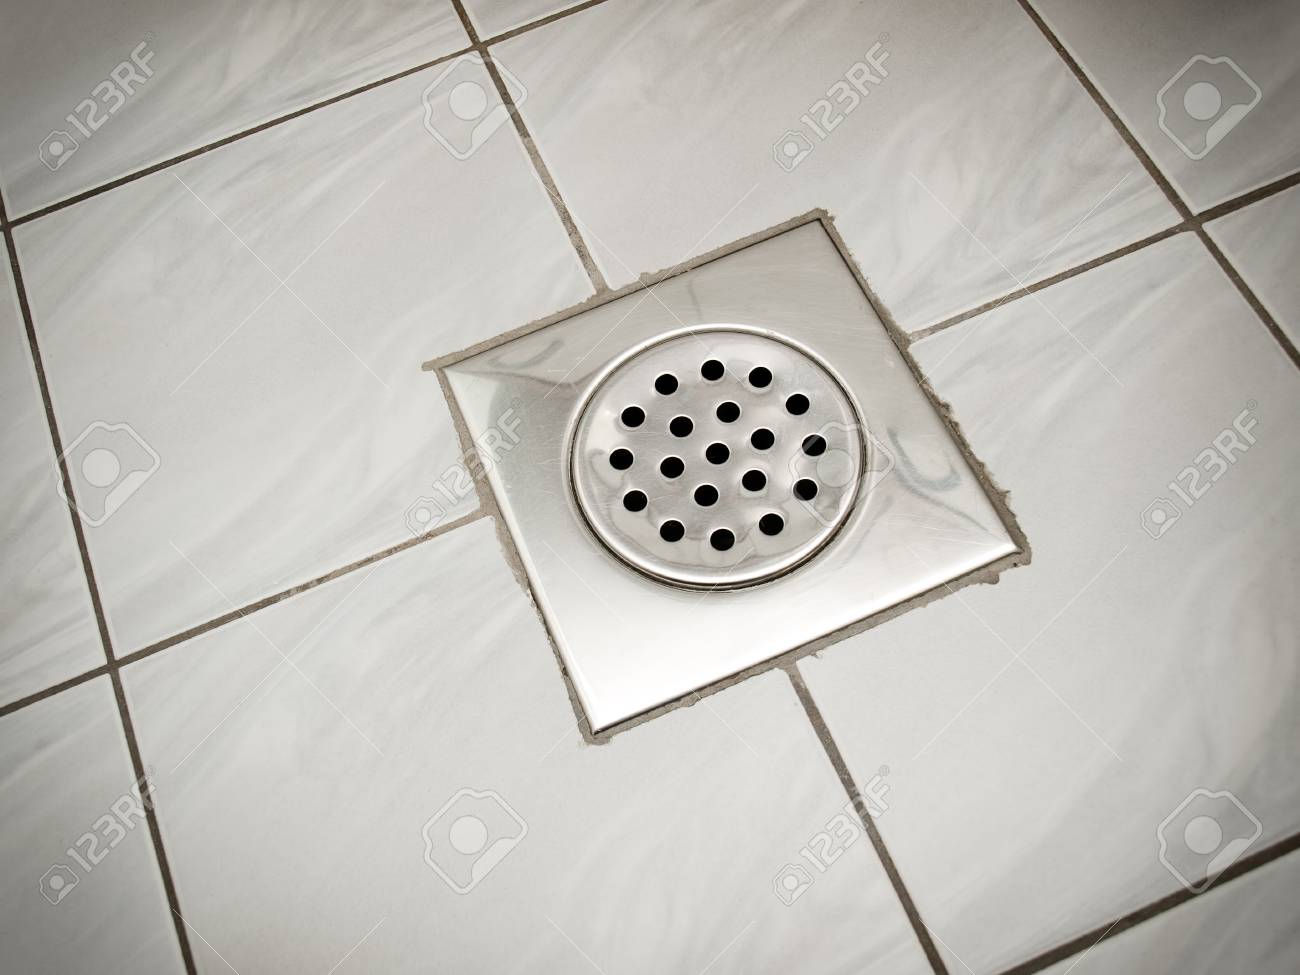 Drain On The Floor Of A Bathroom Or A Kitchen Stock Photo Picture And Royalty Free Image Image 96287953